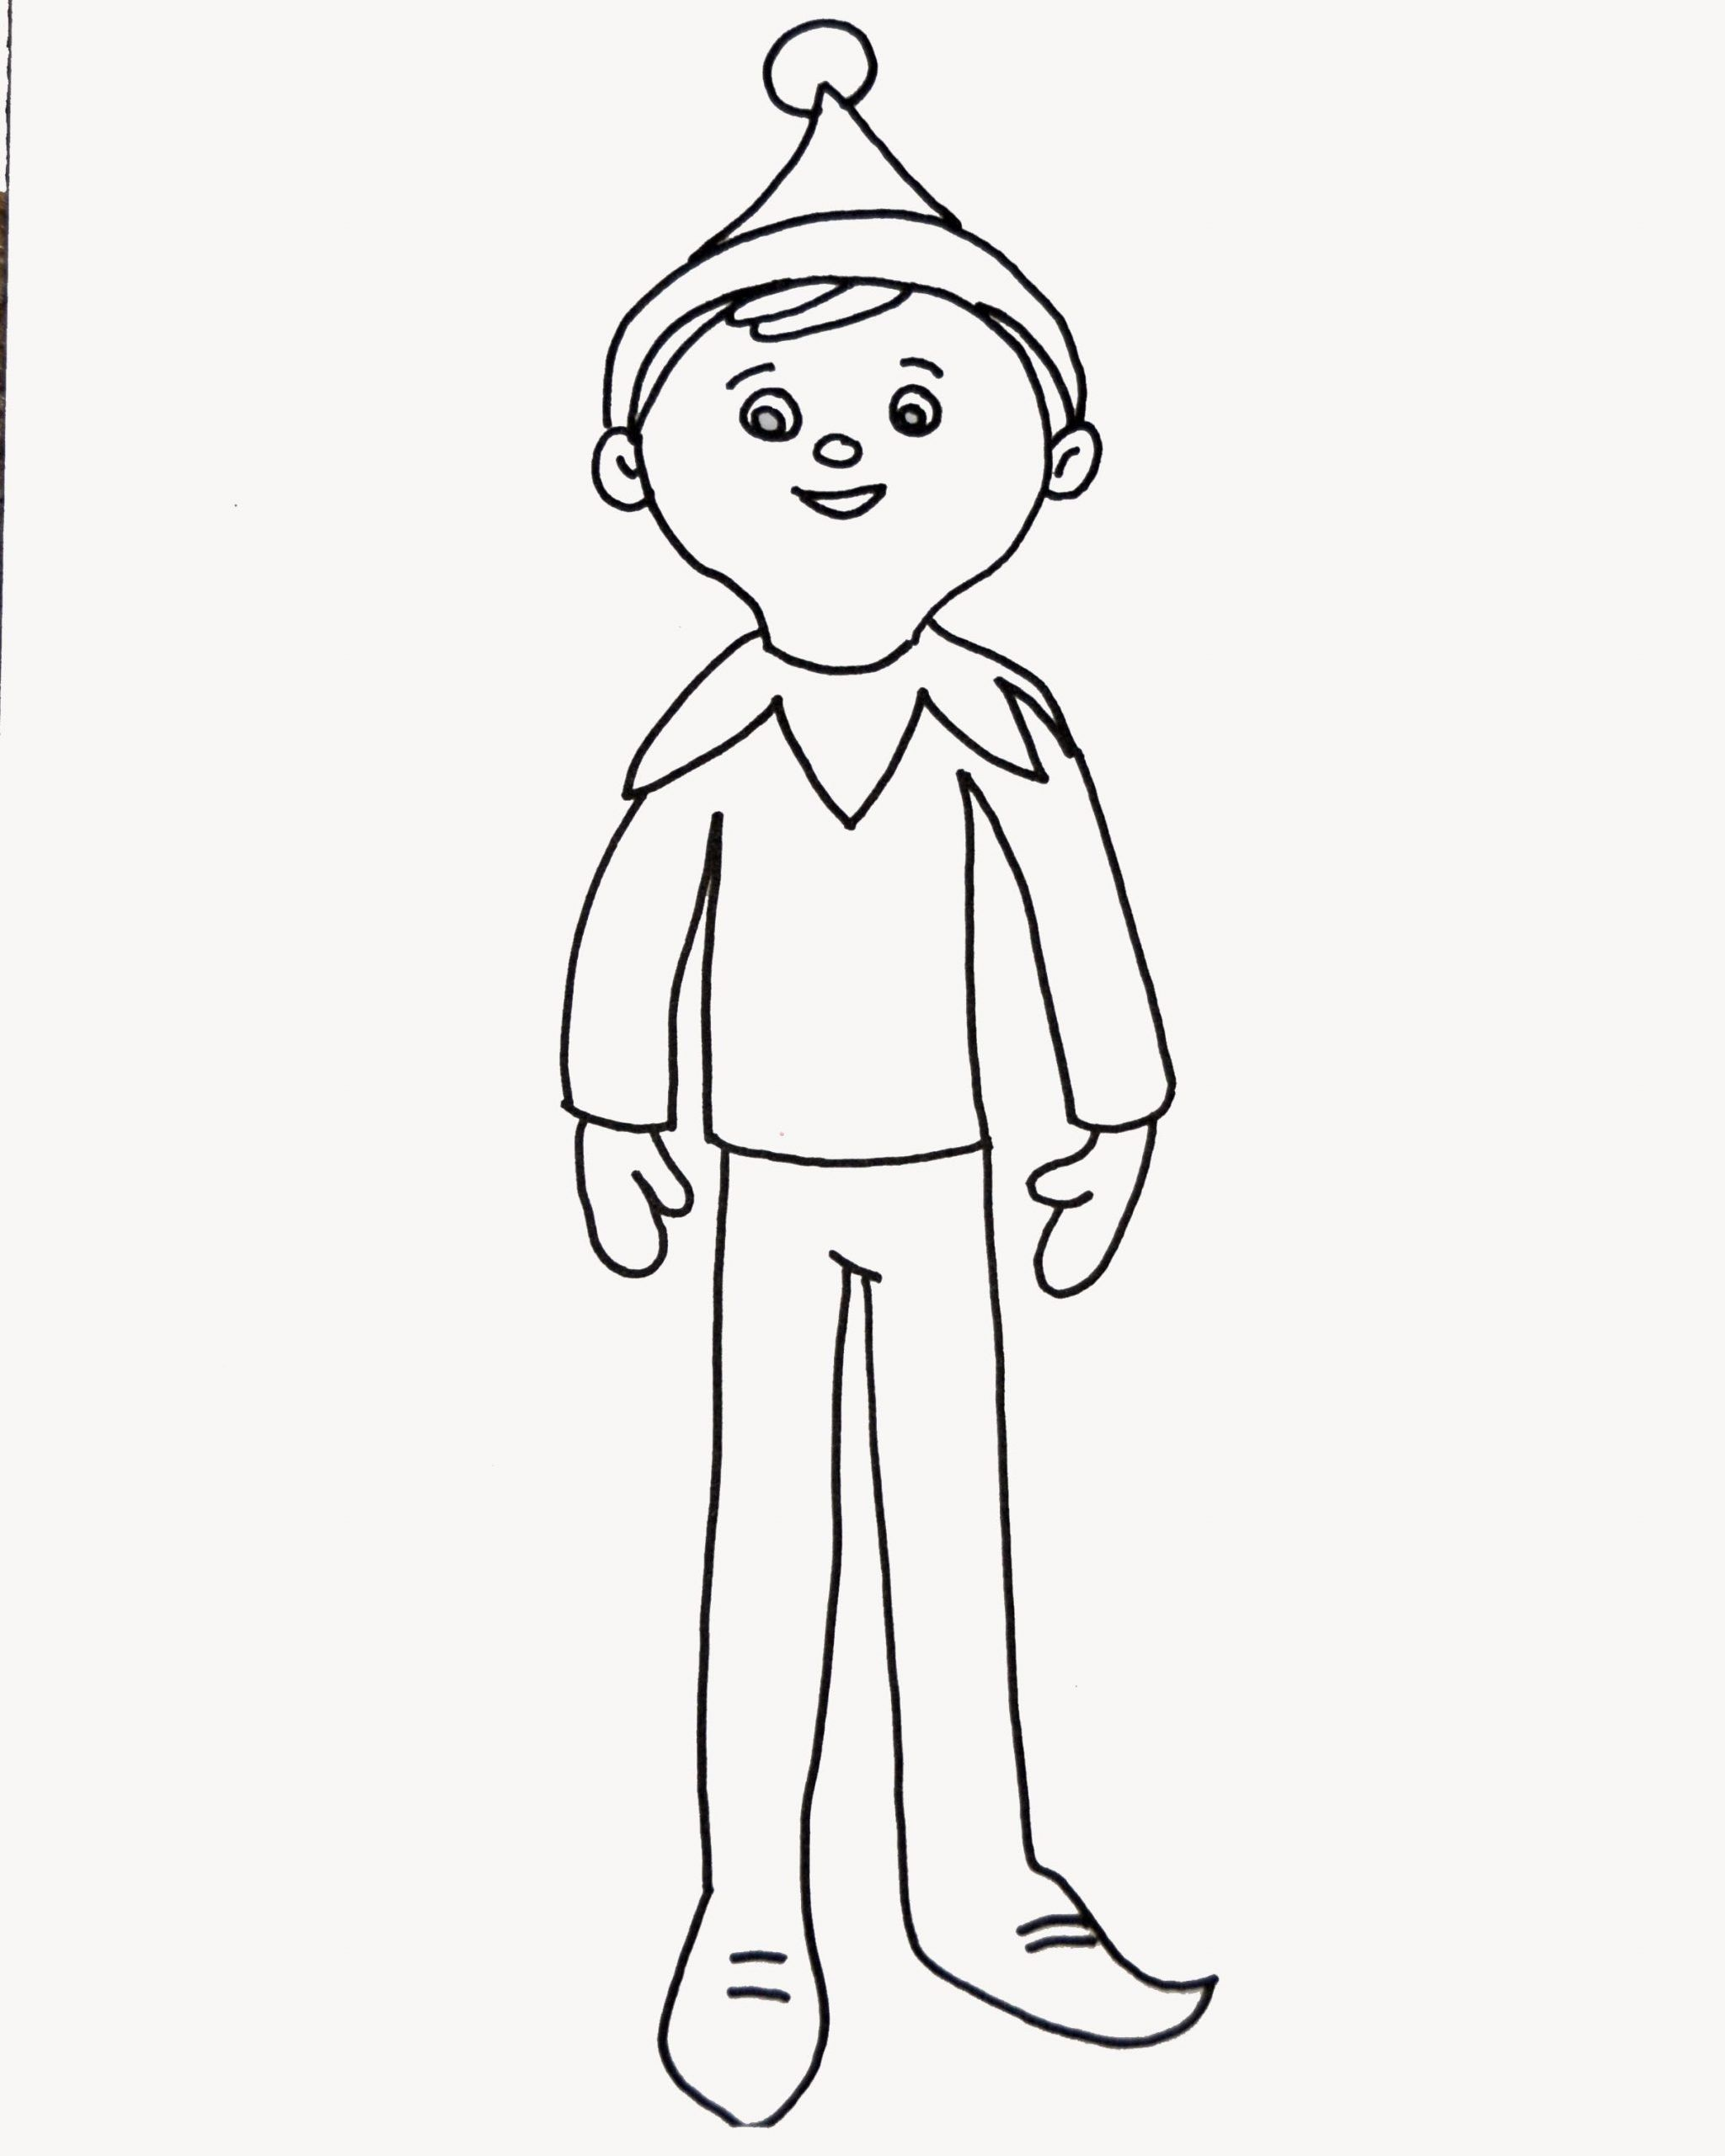 Elf On The Shelf Coloring Elf On The Shelf Coloring Page For Elfie And The Kids To In 2020 Coloring Pages Christmas Coloring Pages Elf On The Shelf